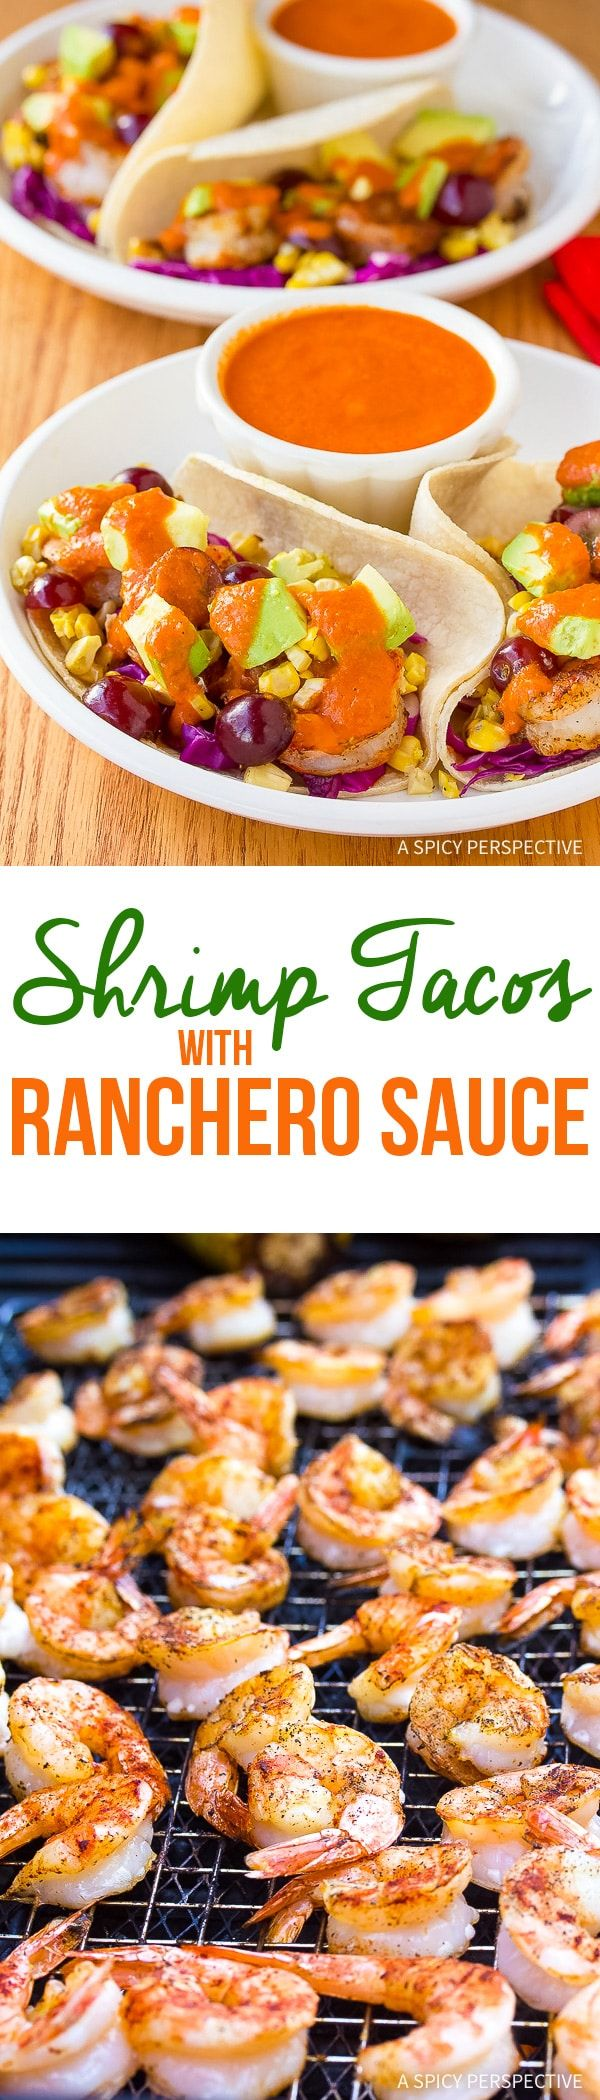 An easy Shrimp Tacos Recipe with Ranchero Sauce - These perky tacos are loaded with fresh produce and drizzled with creamy zesty sauce! via @spicyperspectiv